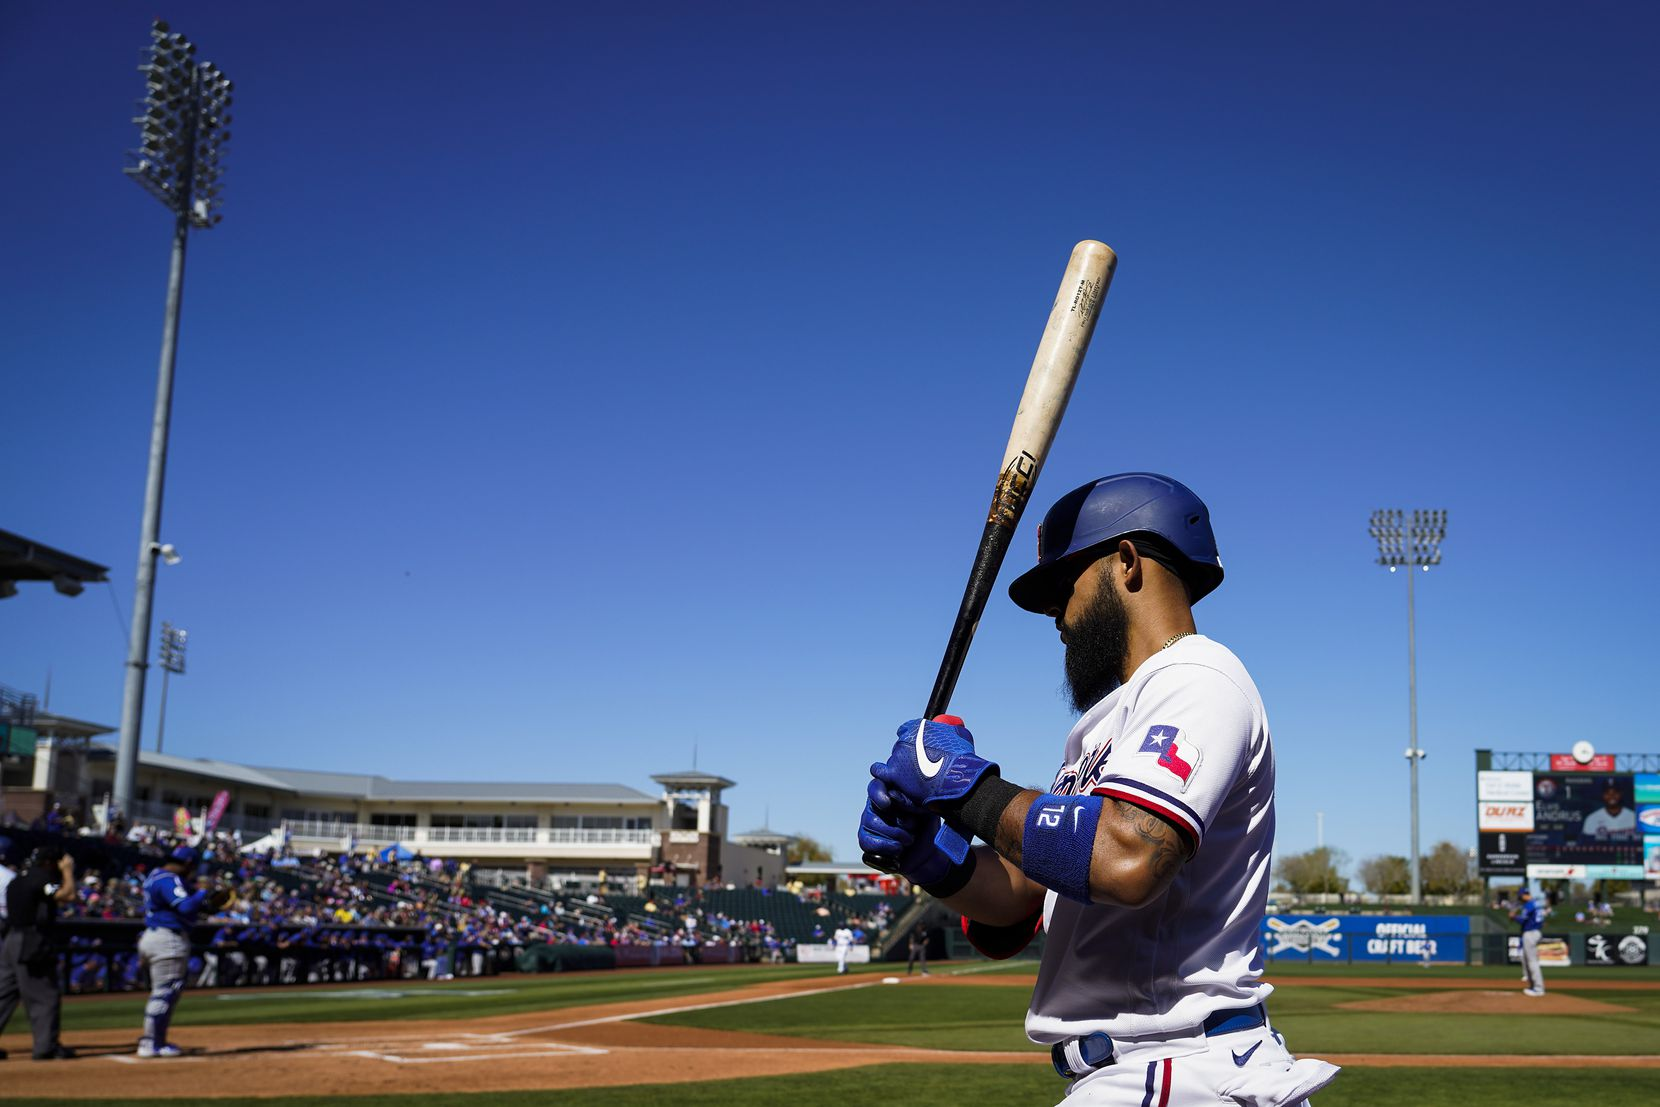 Texas Rangers second baseman Rougned Odor waits on deck during the second inning of a spring training game against the Kansas City Royals at Surprise Stadium on Tuesday, Feb. 25, 2020, in Surprise, Ariz.